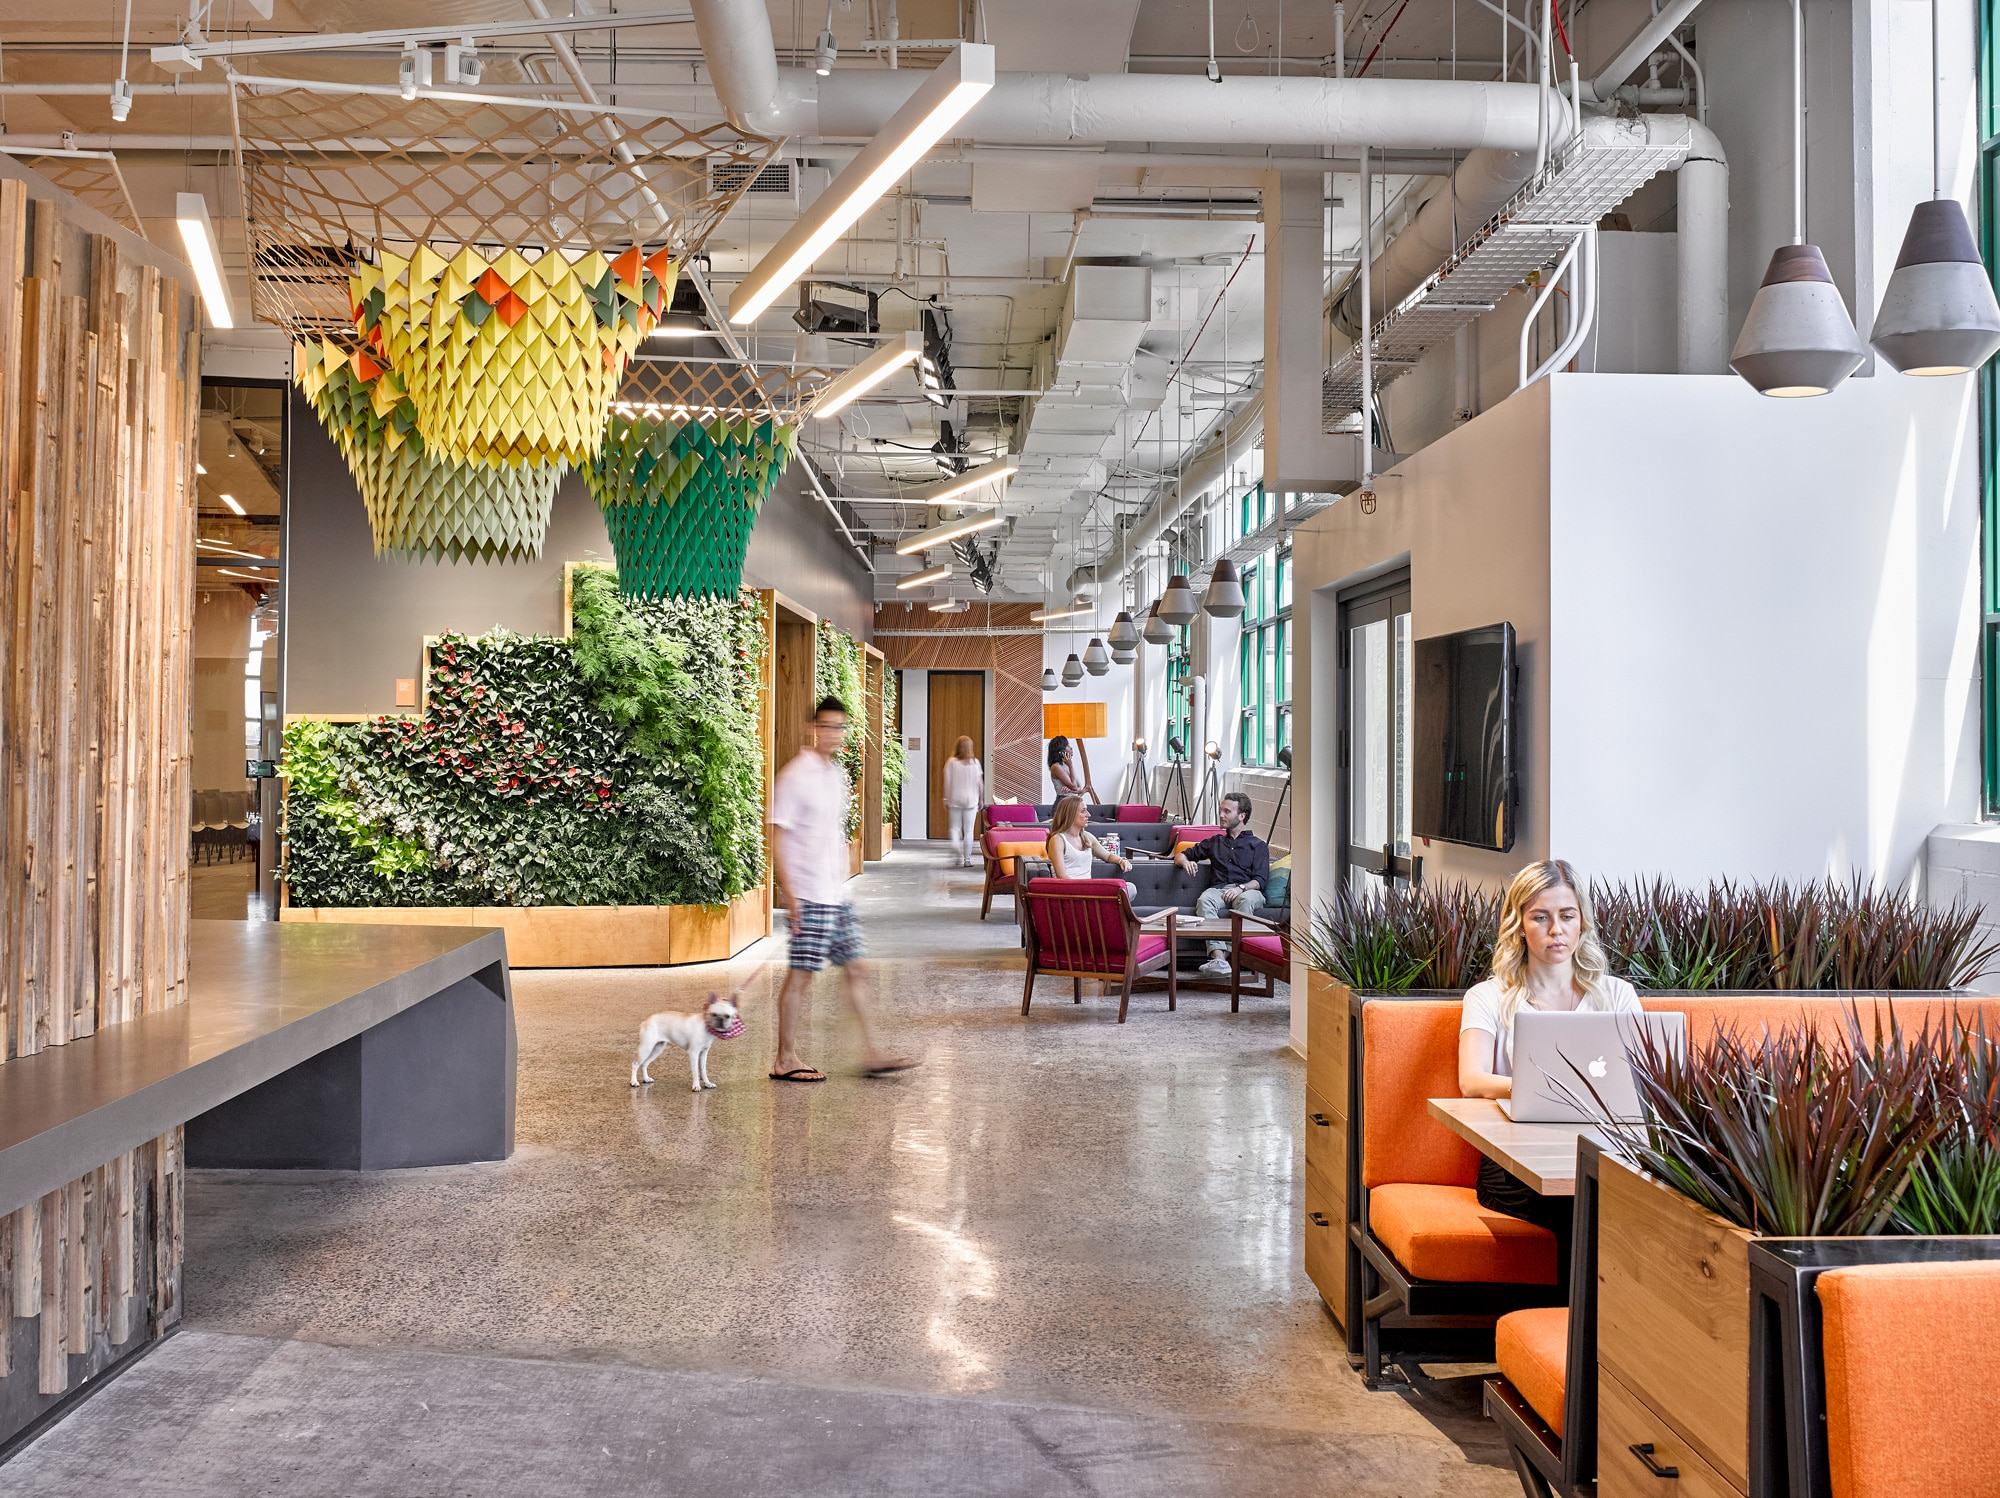 Etsy Crafts A Better Workplace To Meet The Living Building Challenge Gb D